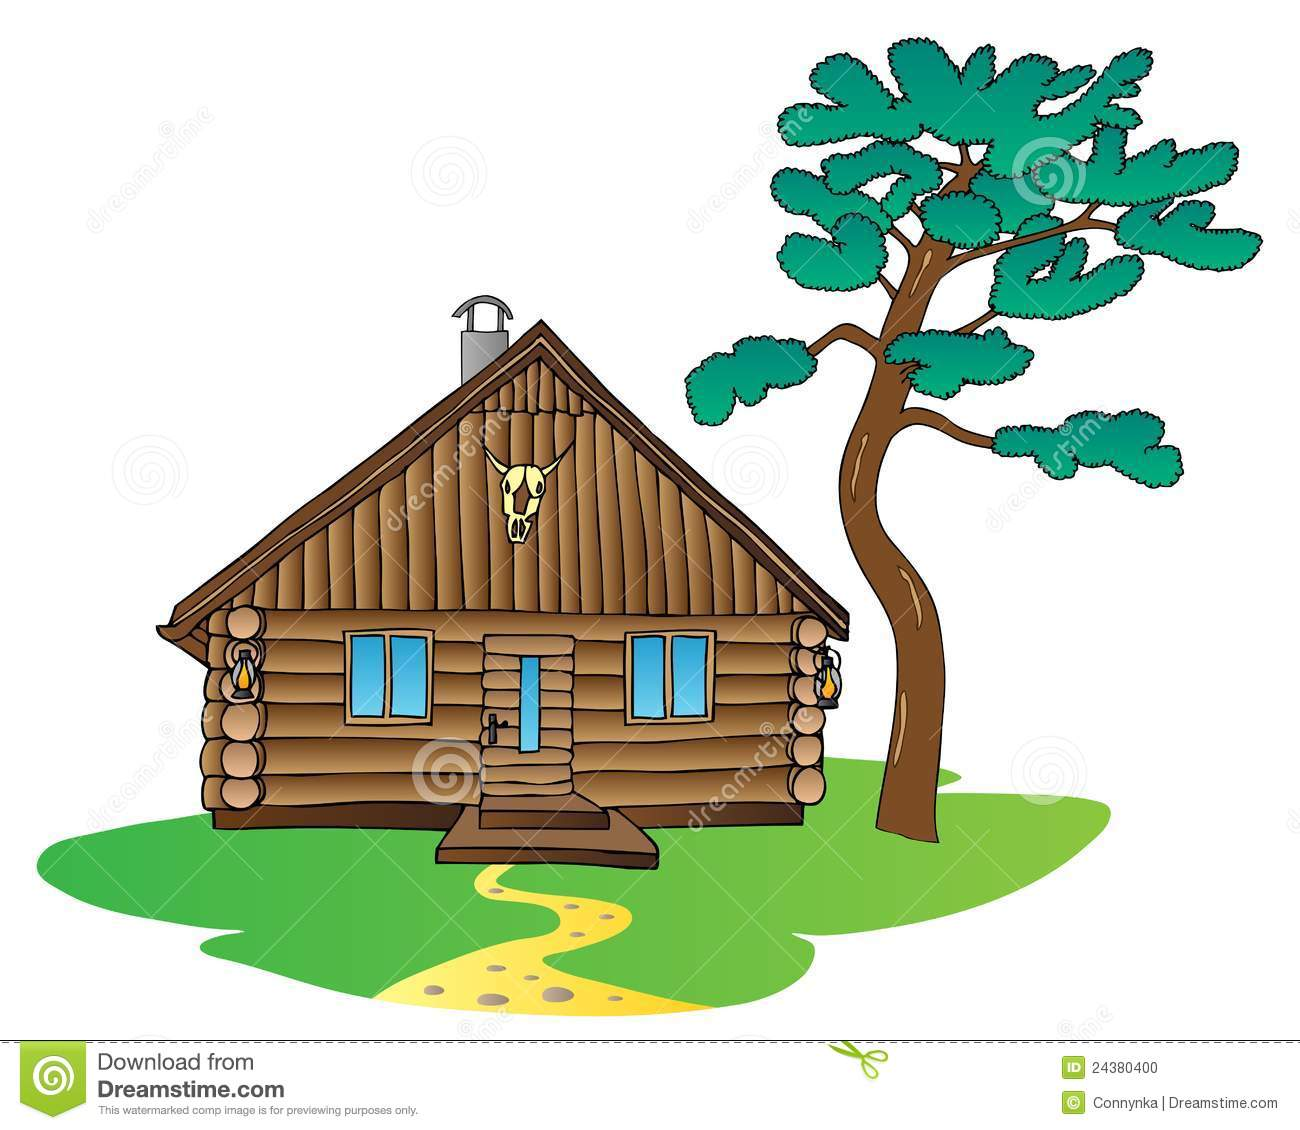 Cottage clipart #3, Download drawings